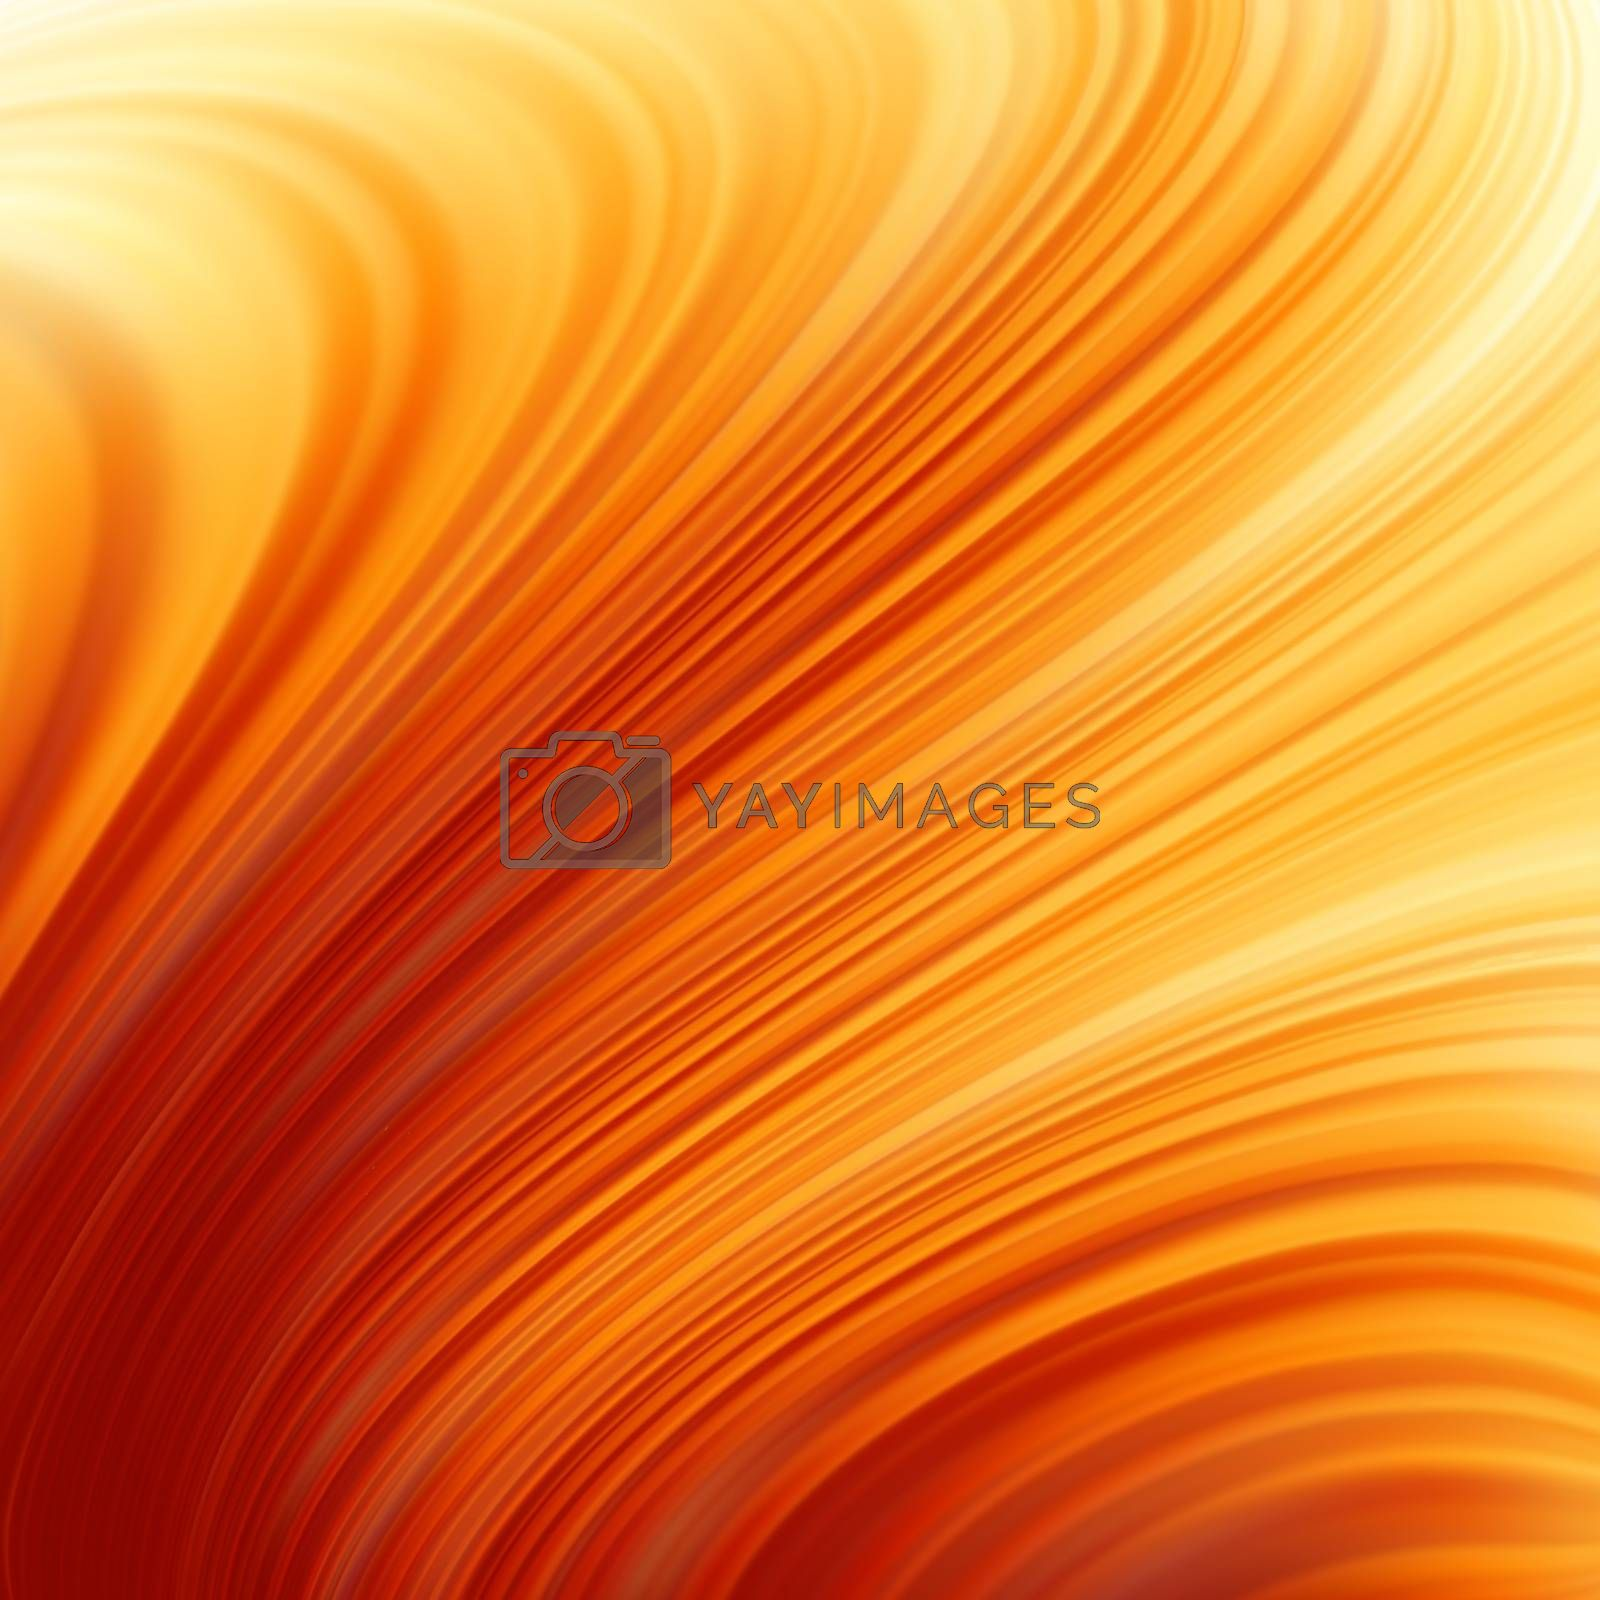 Royalty free image of Glow Twist with fire flow. EPS 8 by Petrov_Vladimir